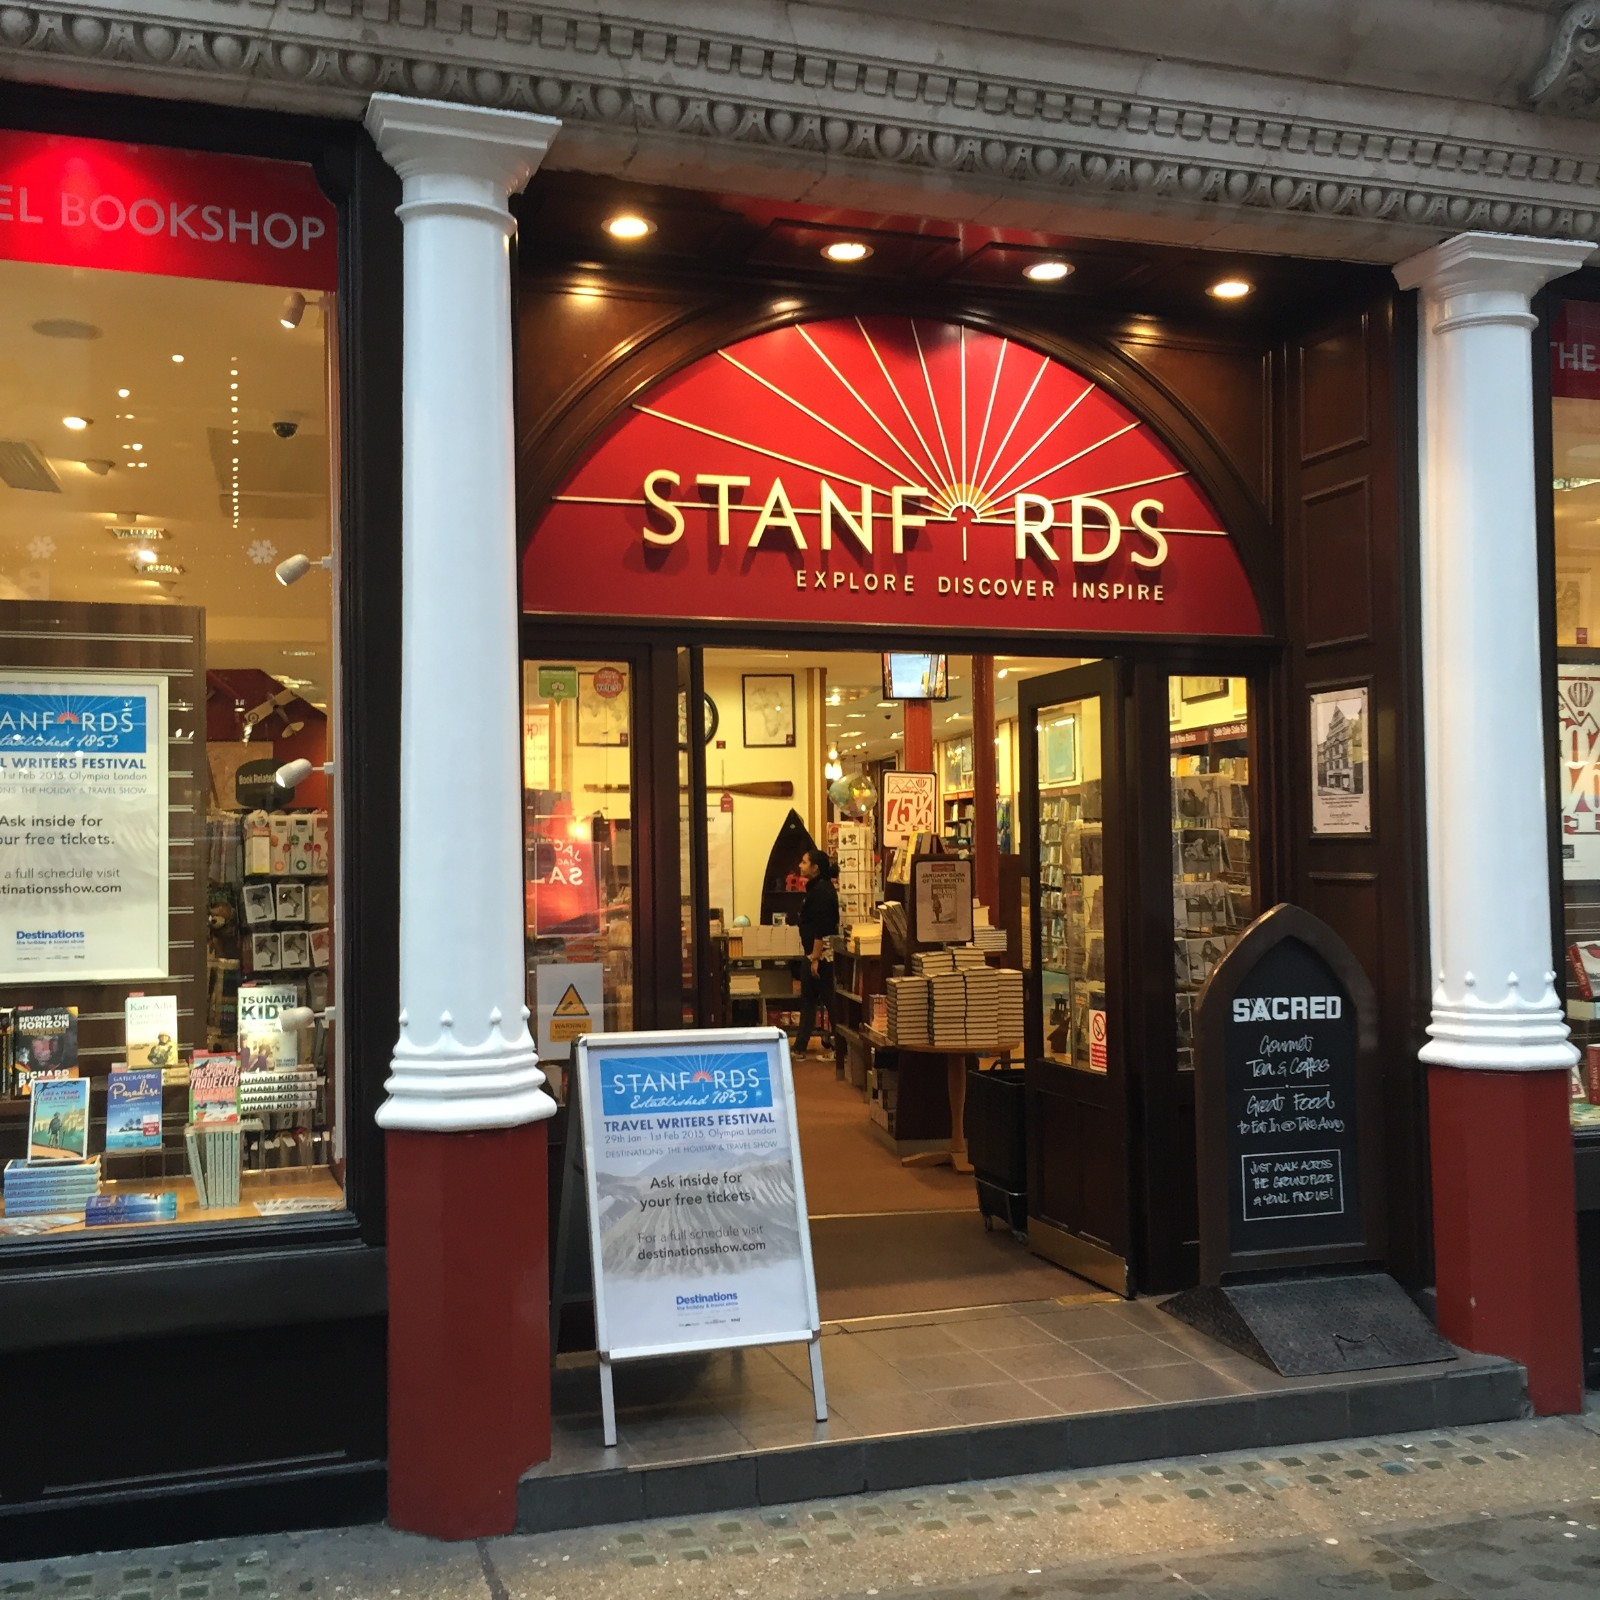 My day started in London, the moment this store opened. If you need a map, this is the best place I have ever seen.